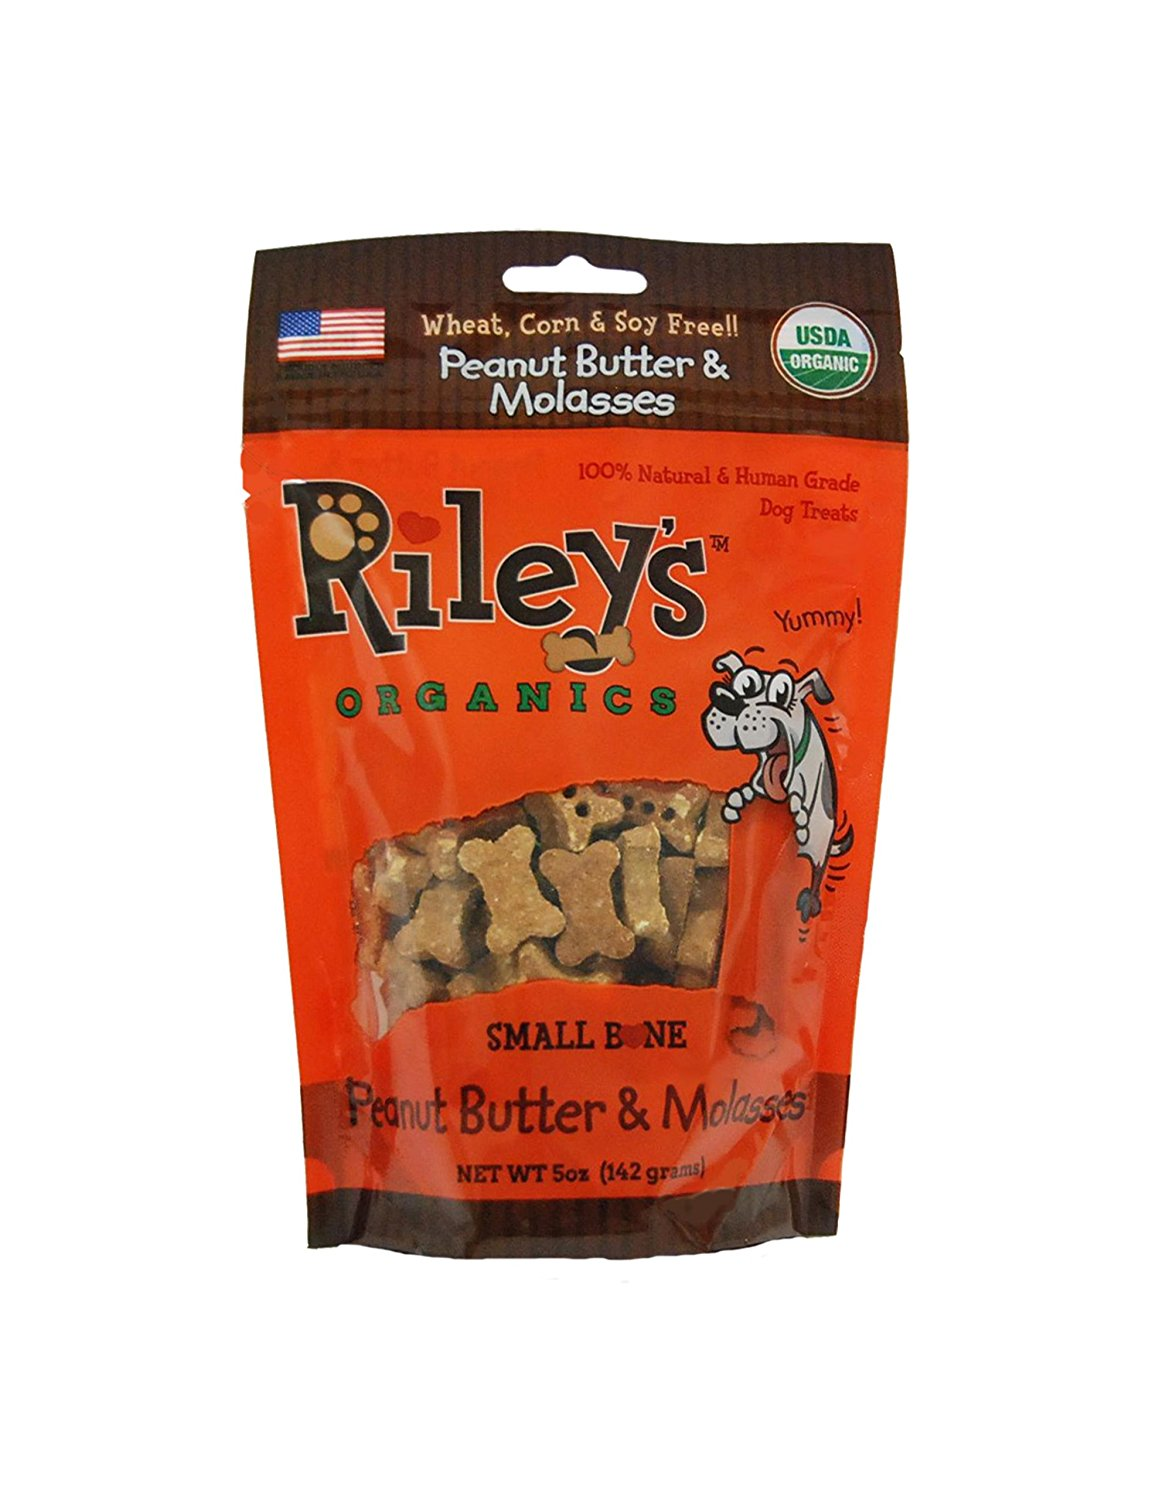 rileys-organics-peanut-butter-molasses